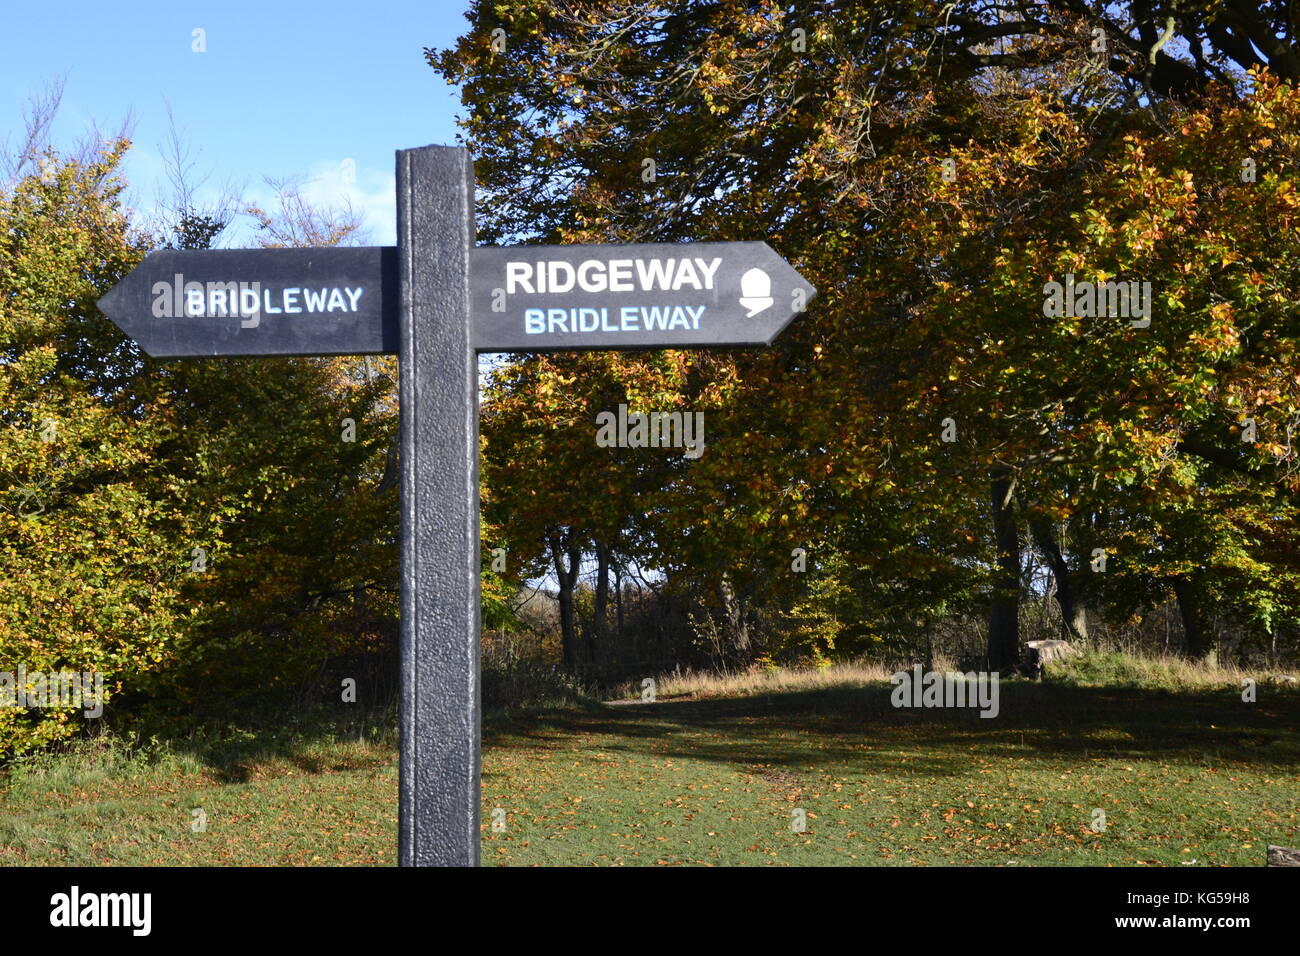 Ridgeway Bridleway sign, on The Ridgeway Path, Whiteleaf Hill. Whiteleaf Woods. Autumn, Chilterns, UK Stock Photo